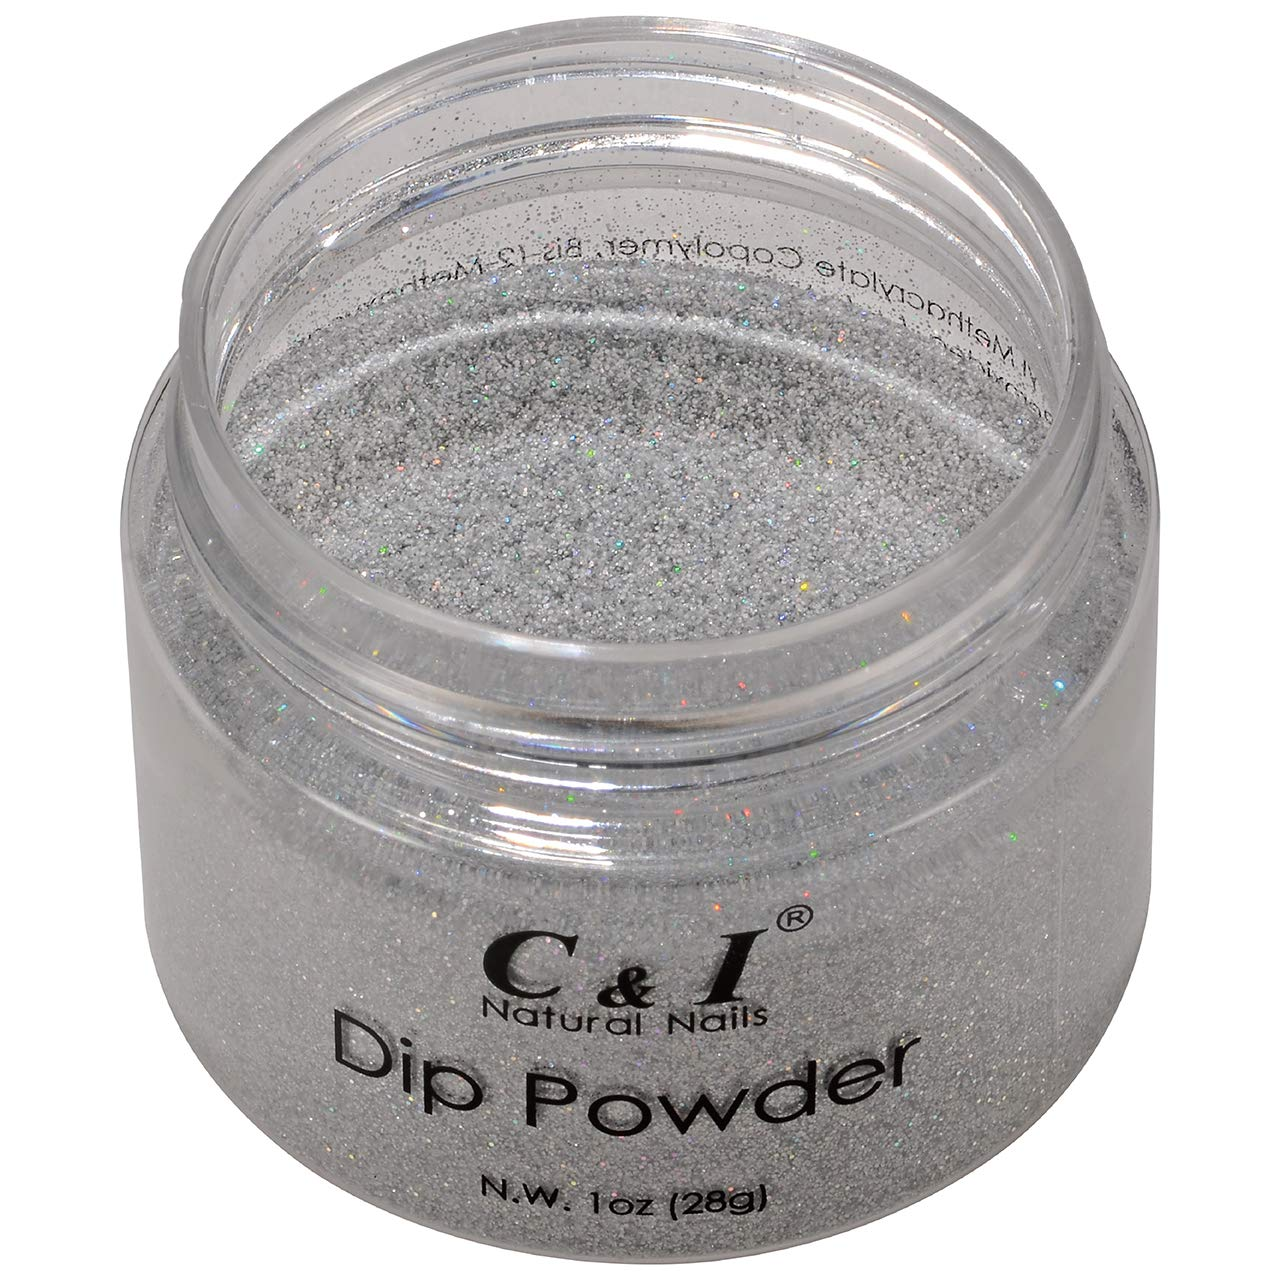 C I Dipping Powder Color Popular shop is the lowest price challenge No.010 Silver Col Translated Shine Pearl Glitter